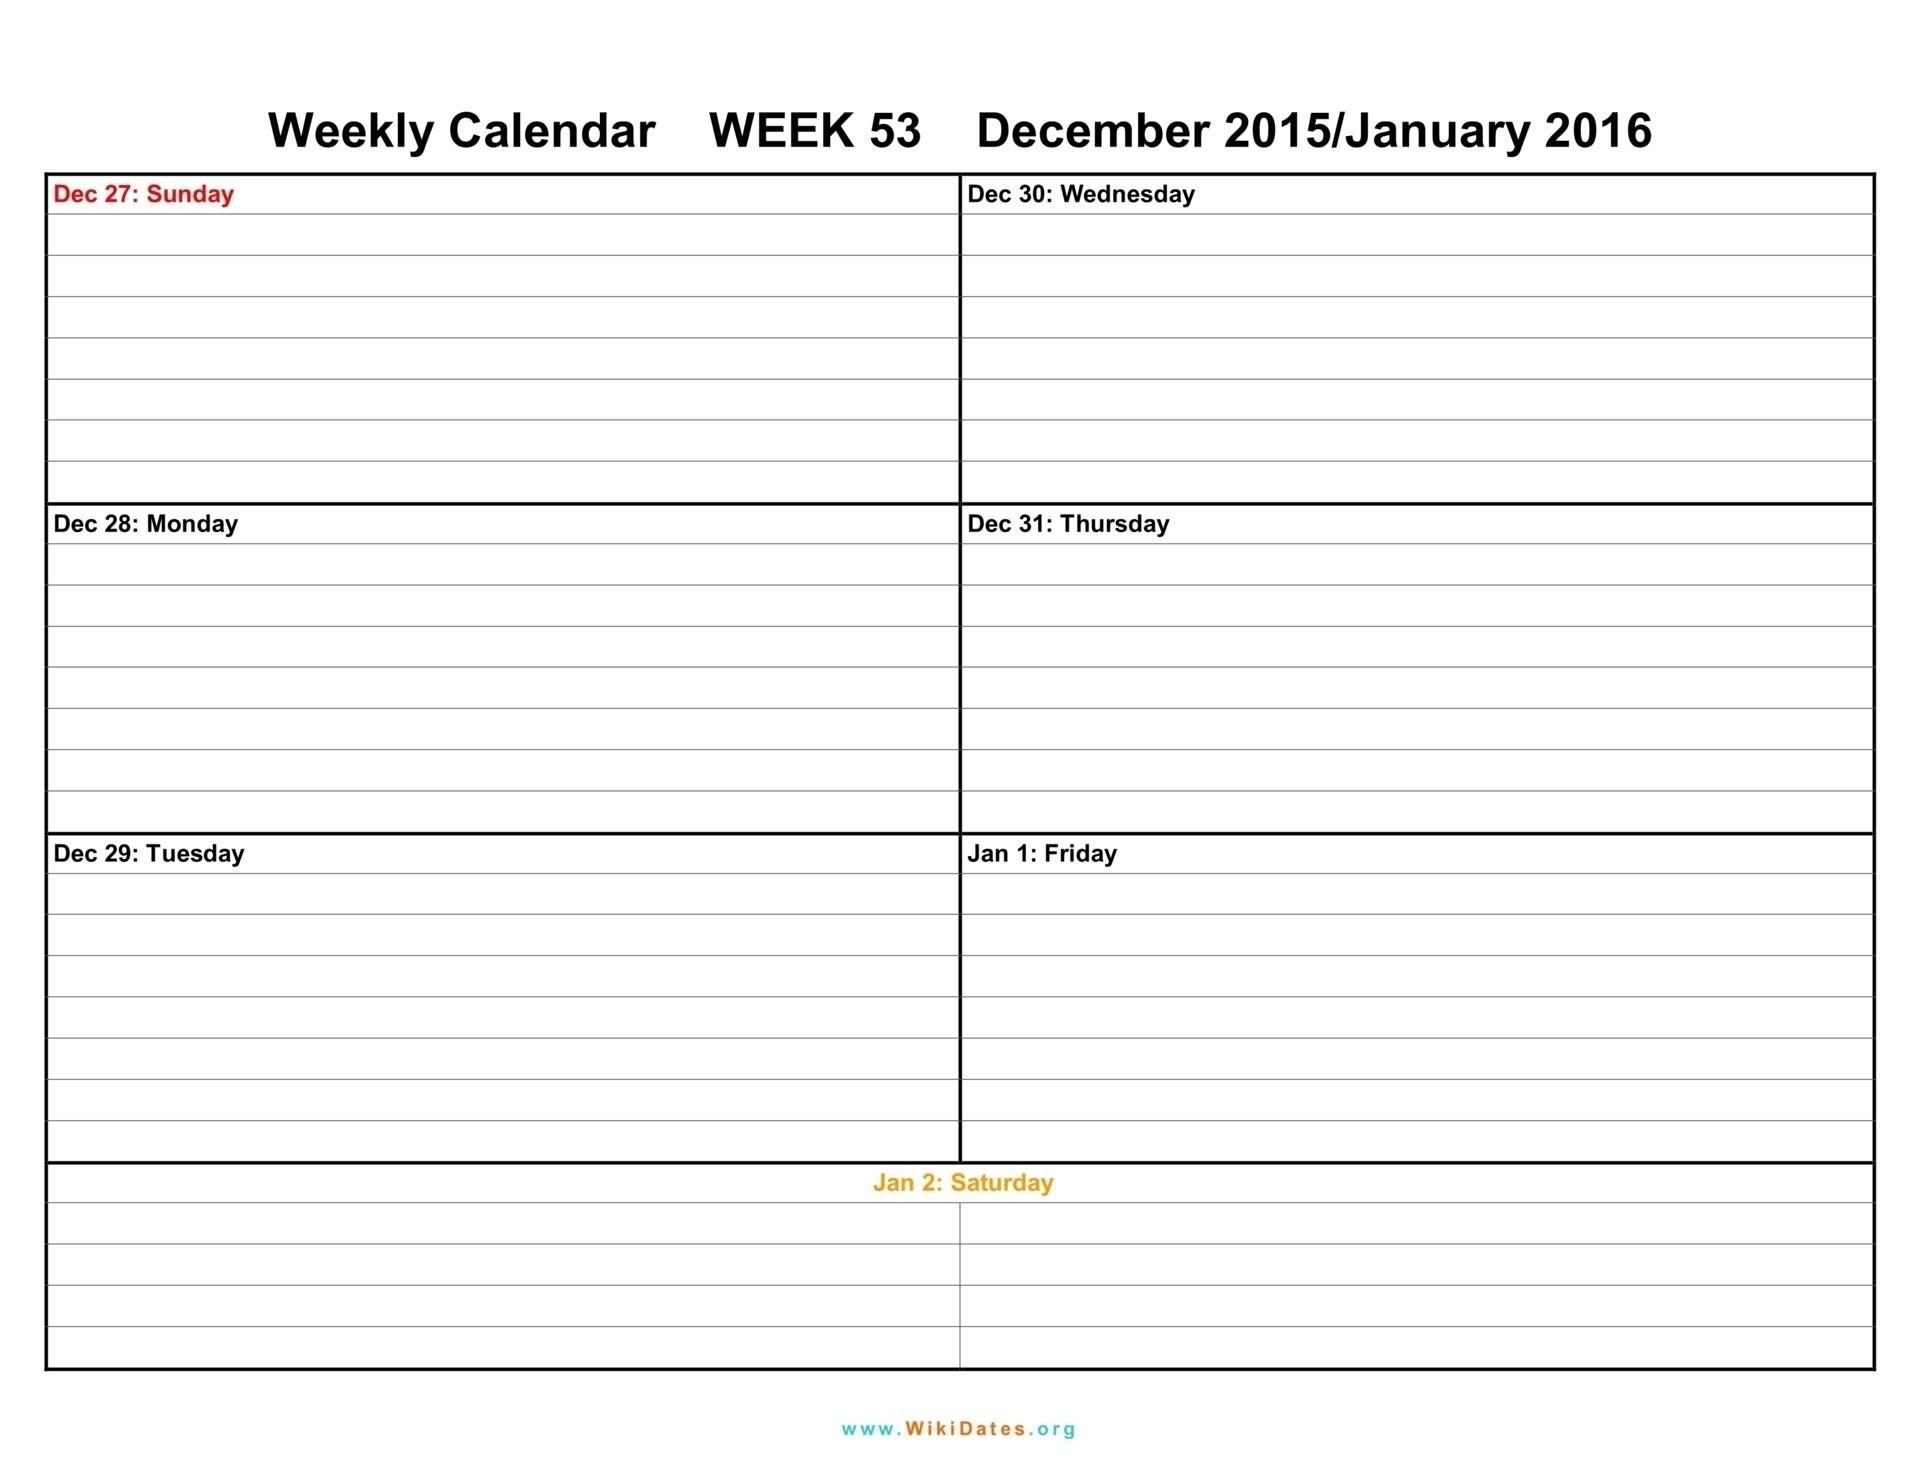 Free Two Week Calendar Template Intable Schedule Weeks Blank | Smorad inside Two Week Blank Calendar Template